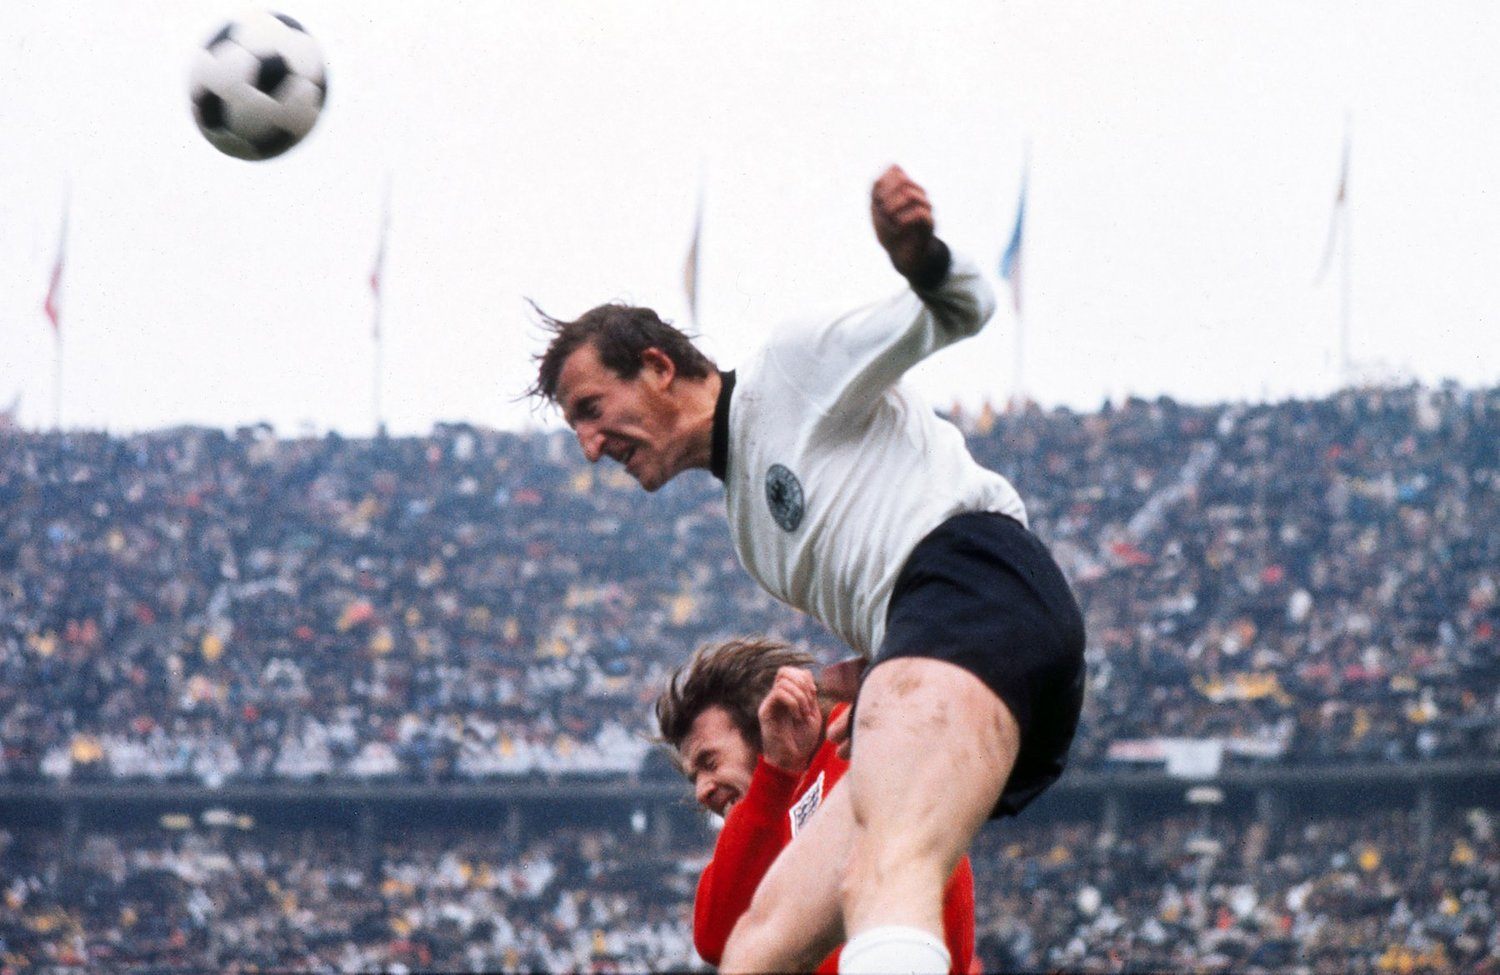 Euro72 QF: W Germany 0 England 0